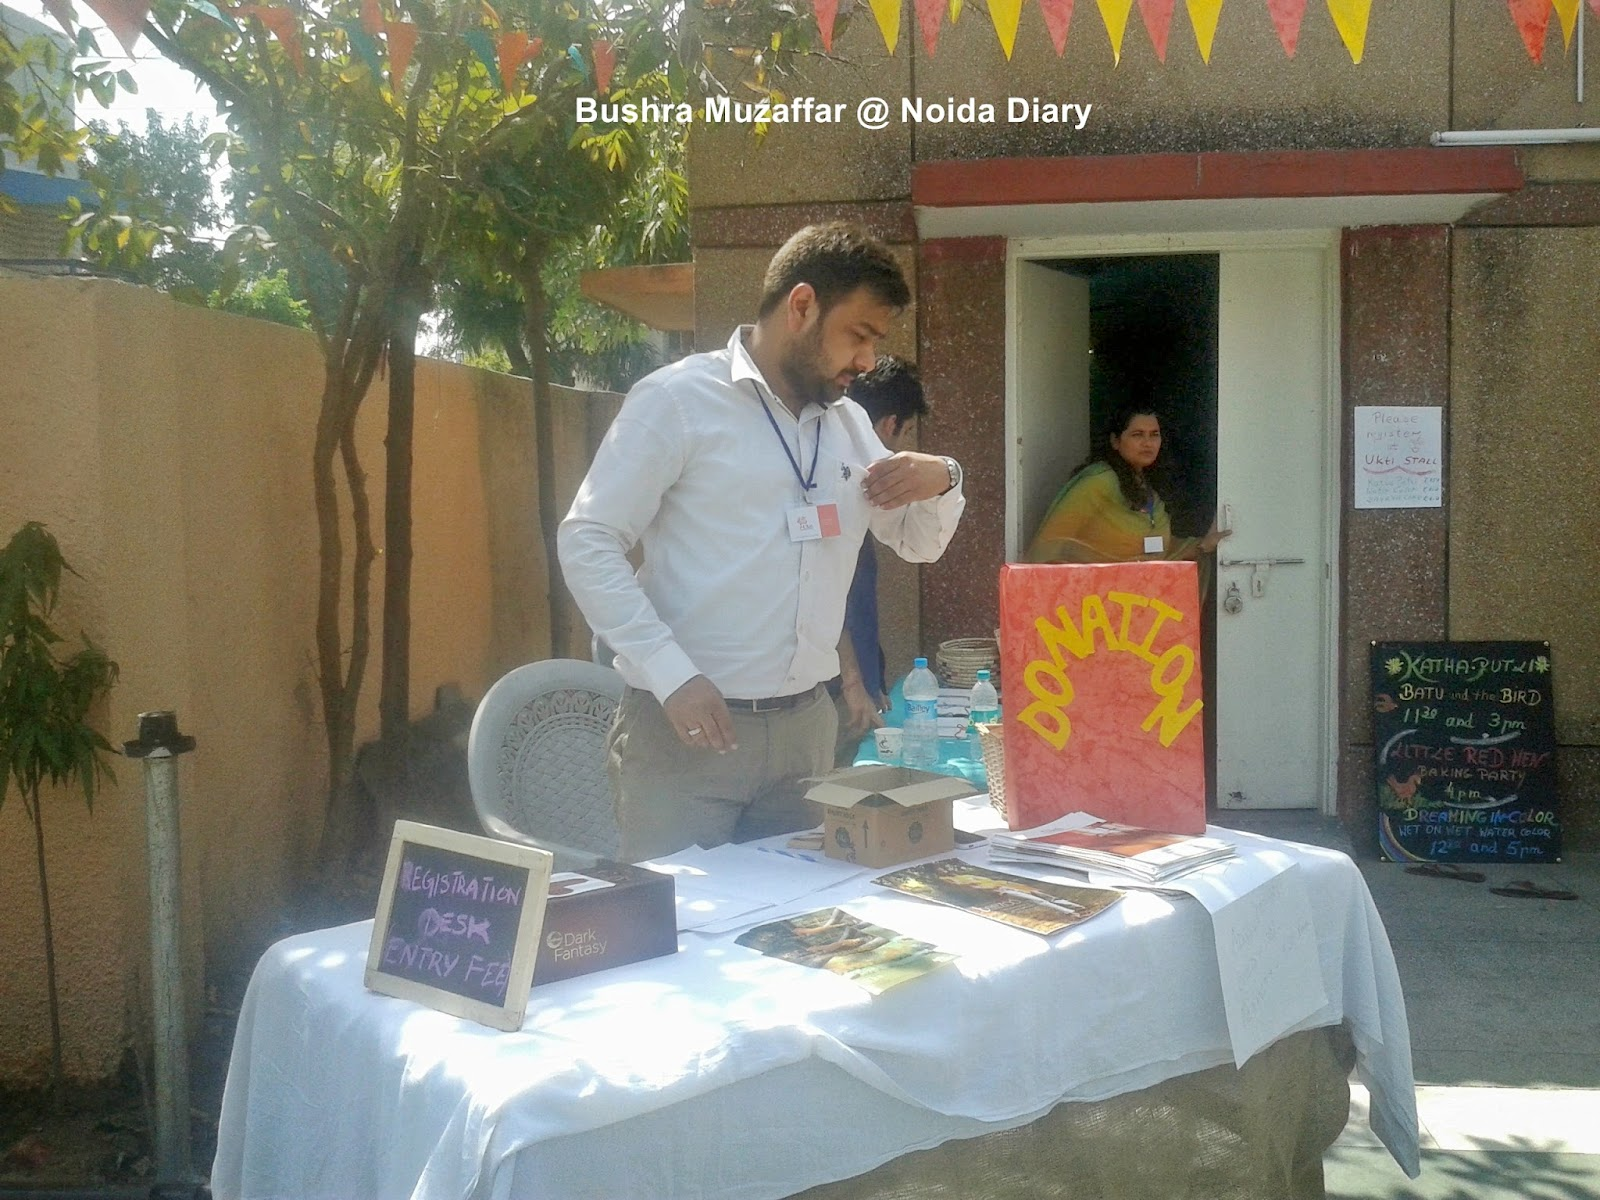 Registration Desk of the Spring Festival, Noida